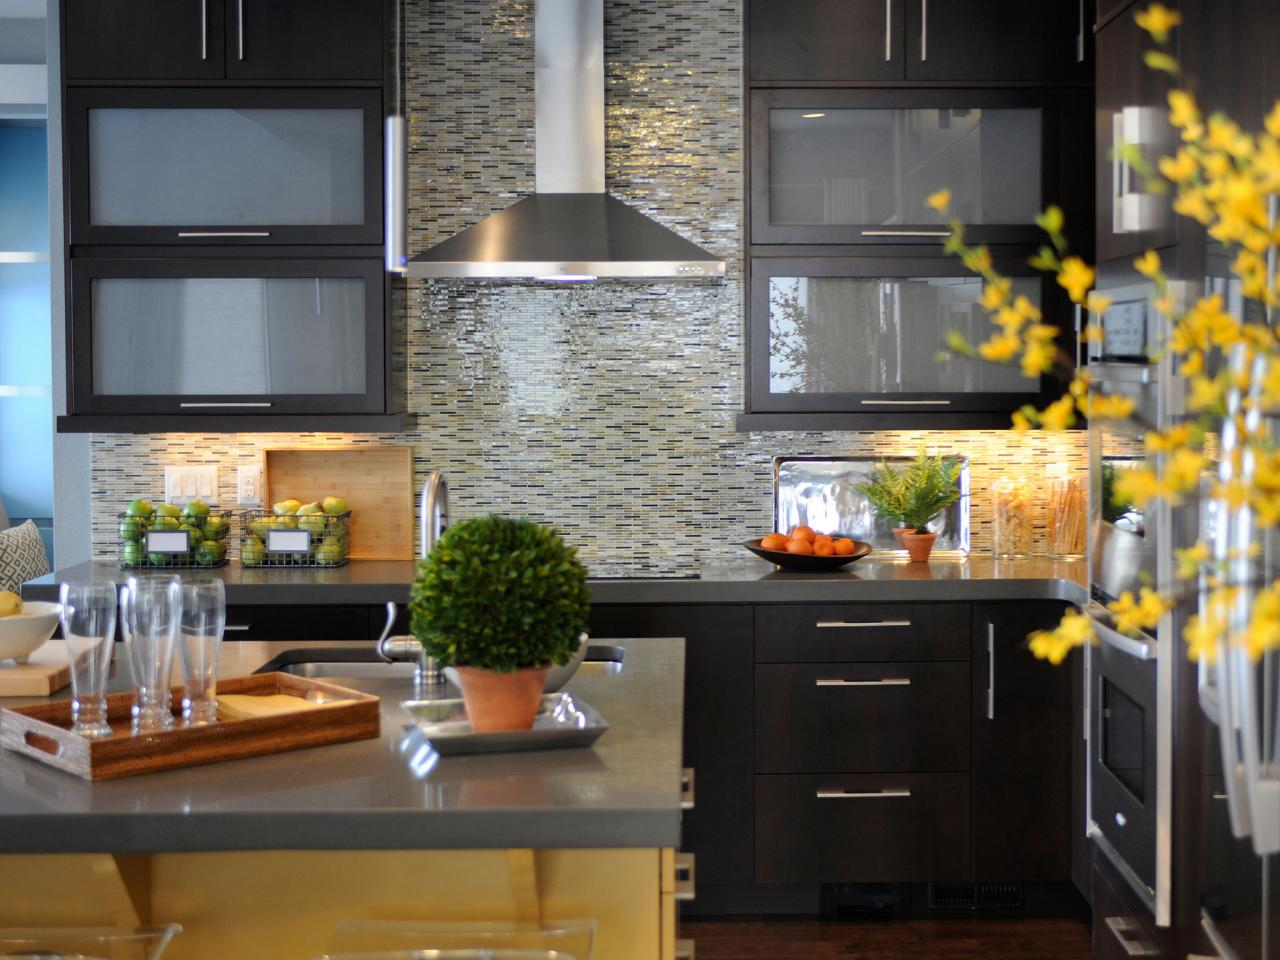 Blacksplash Ideas kitchen backsplash tile ideas | hgtv